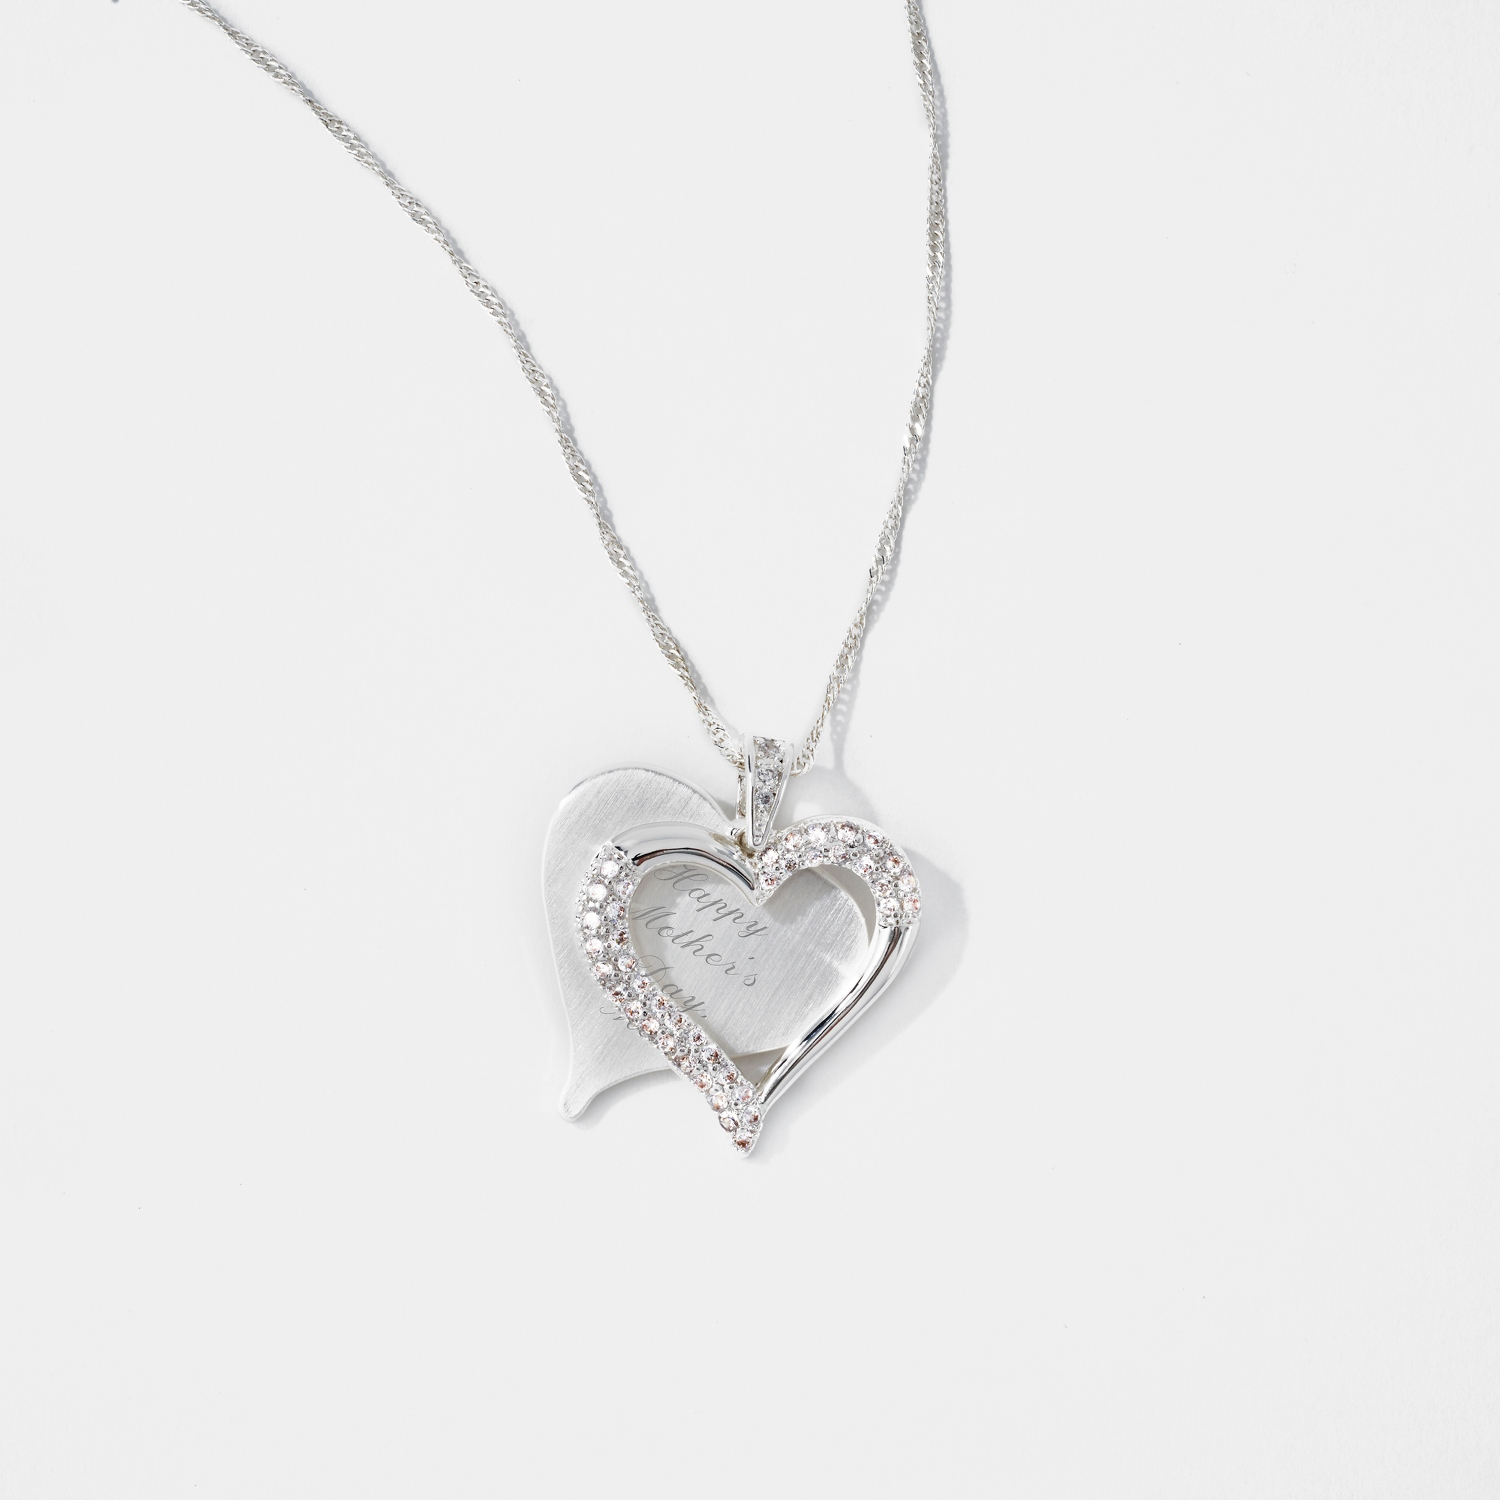 claire pendant necklace us jewellery s mood heart